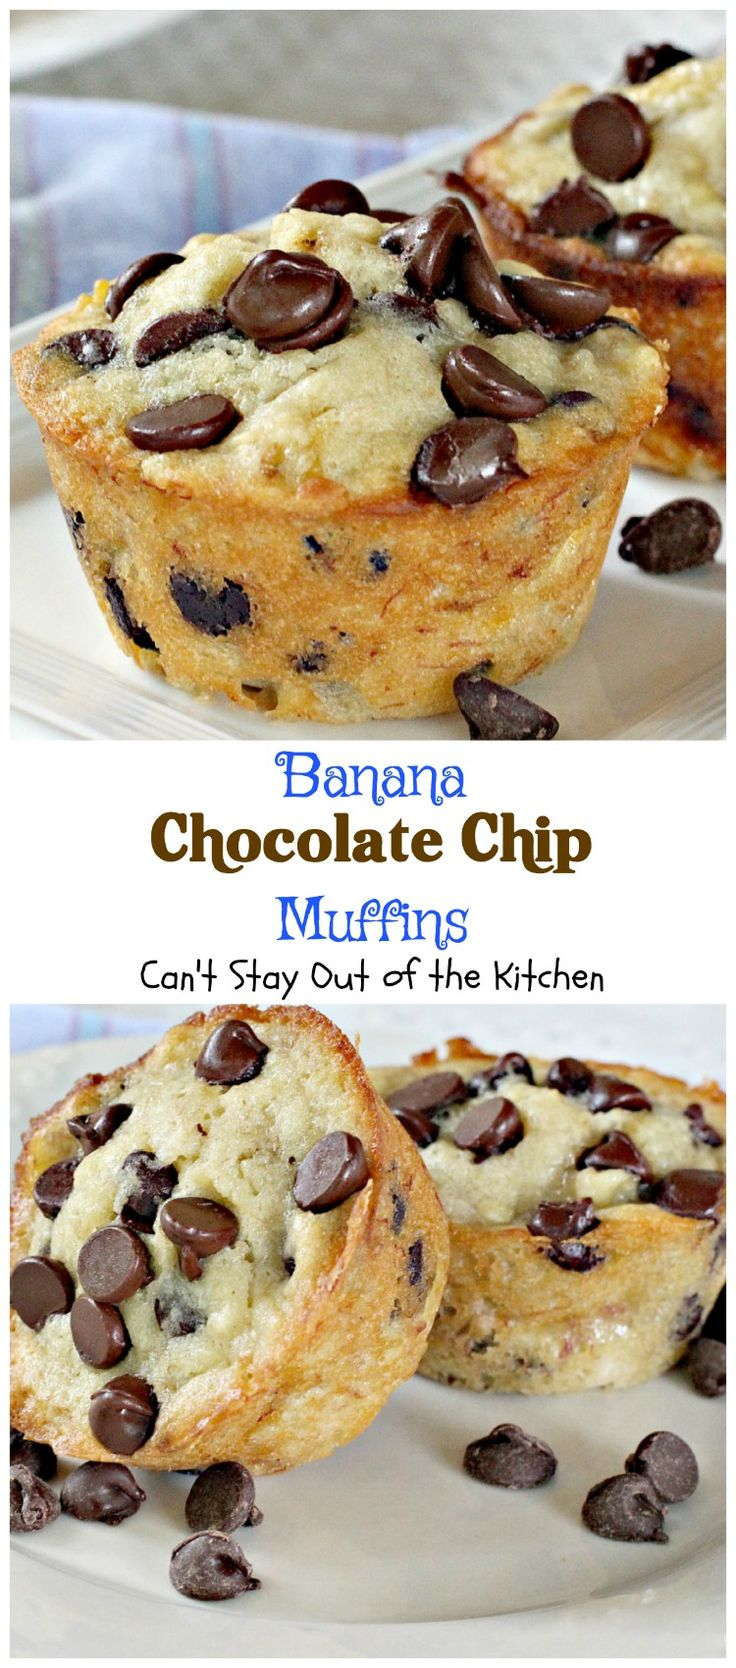 Banana Chocolate Chip Muffins |